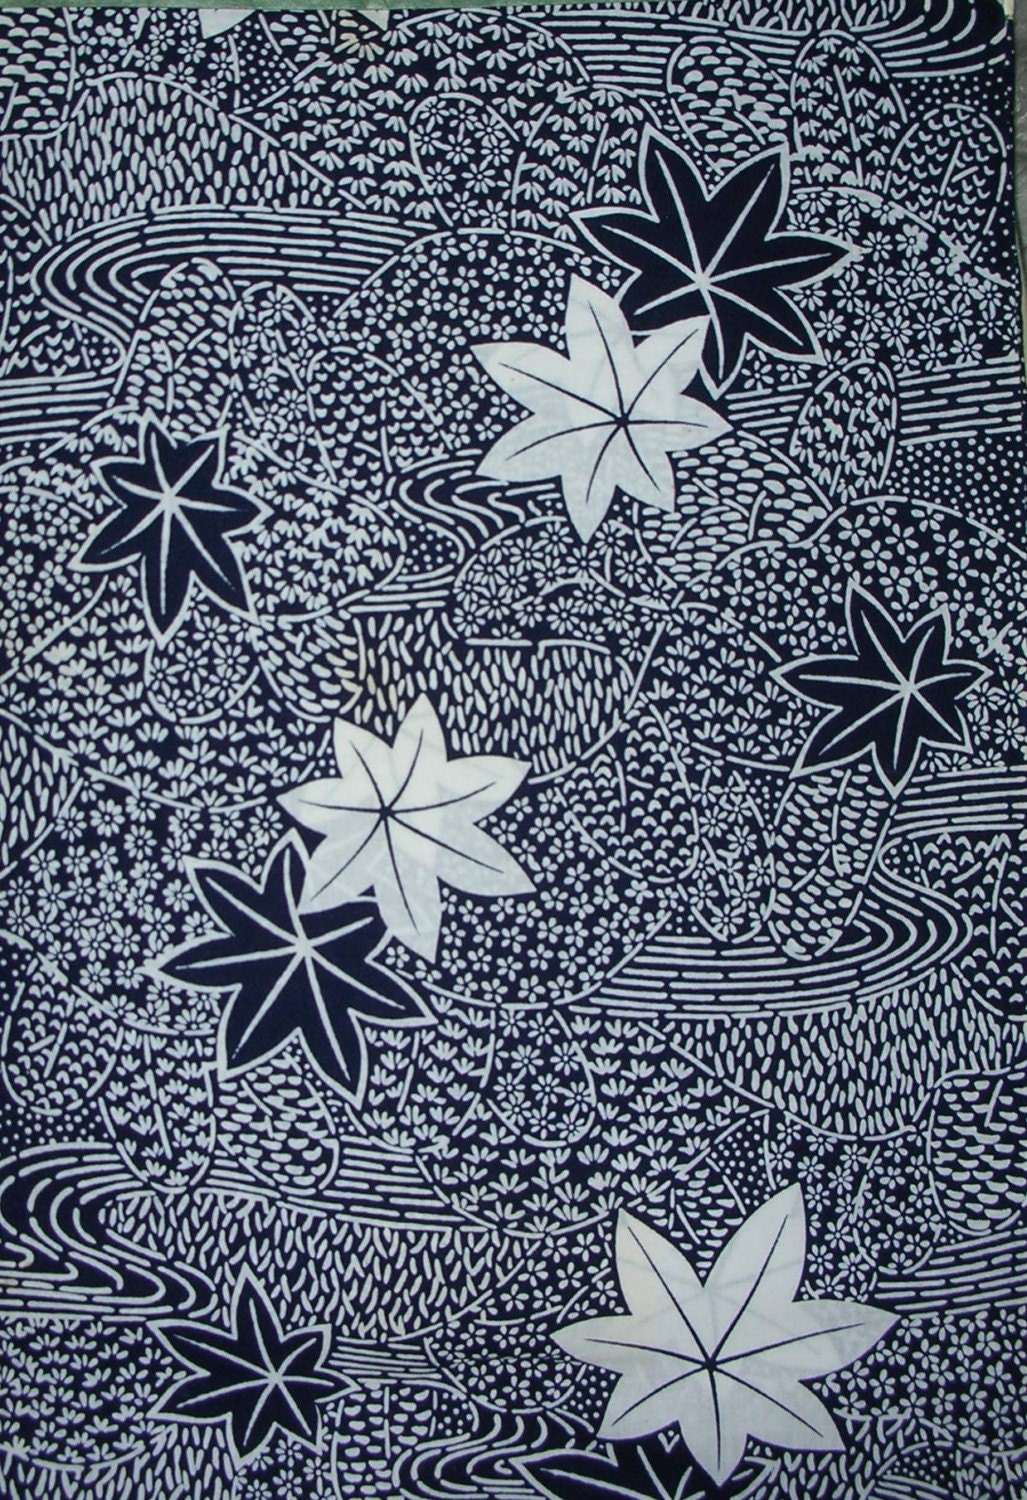 Vintage Kimono Cotton - Packed Floral with Maple Leaves   10 percent OFF SALE on all Kimono silk, wool and Yukata cotton fabrics     Ends October 3